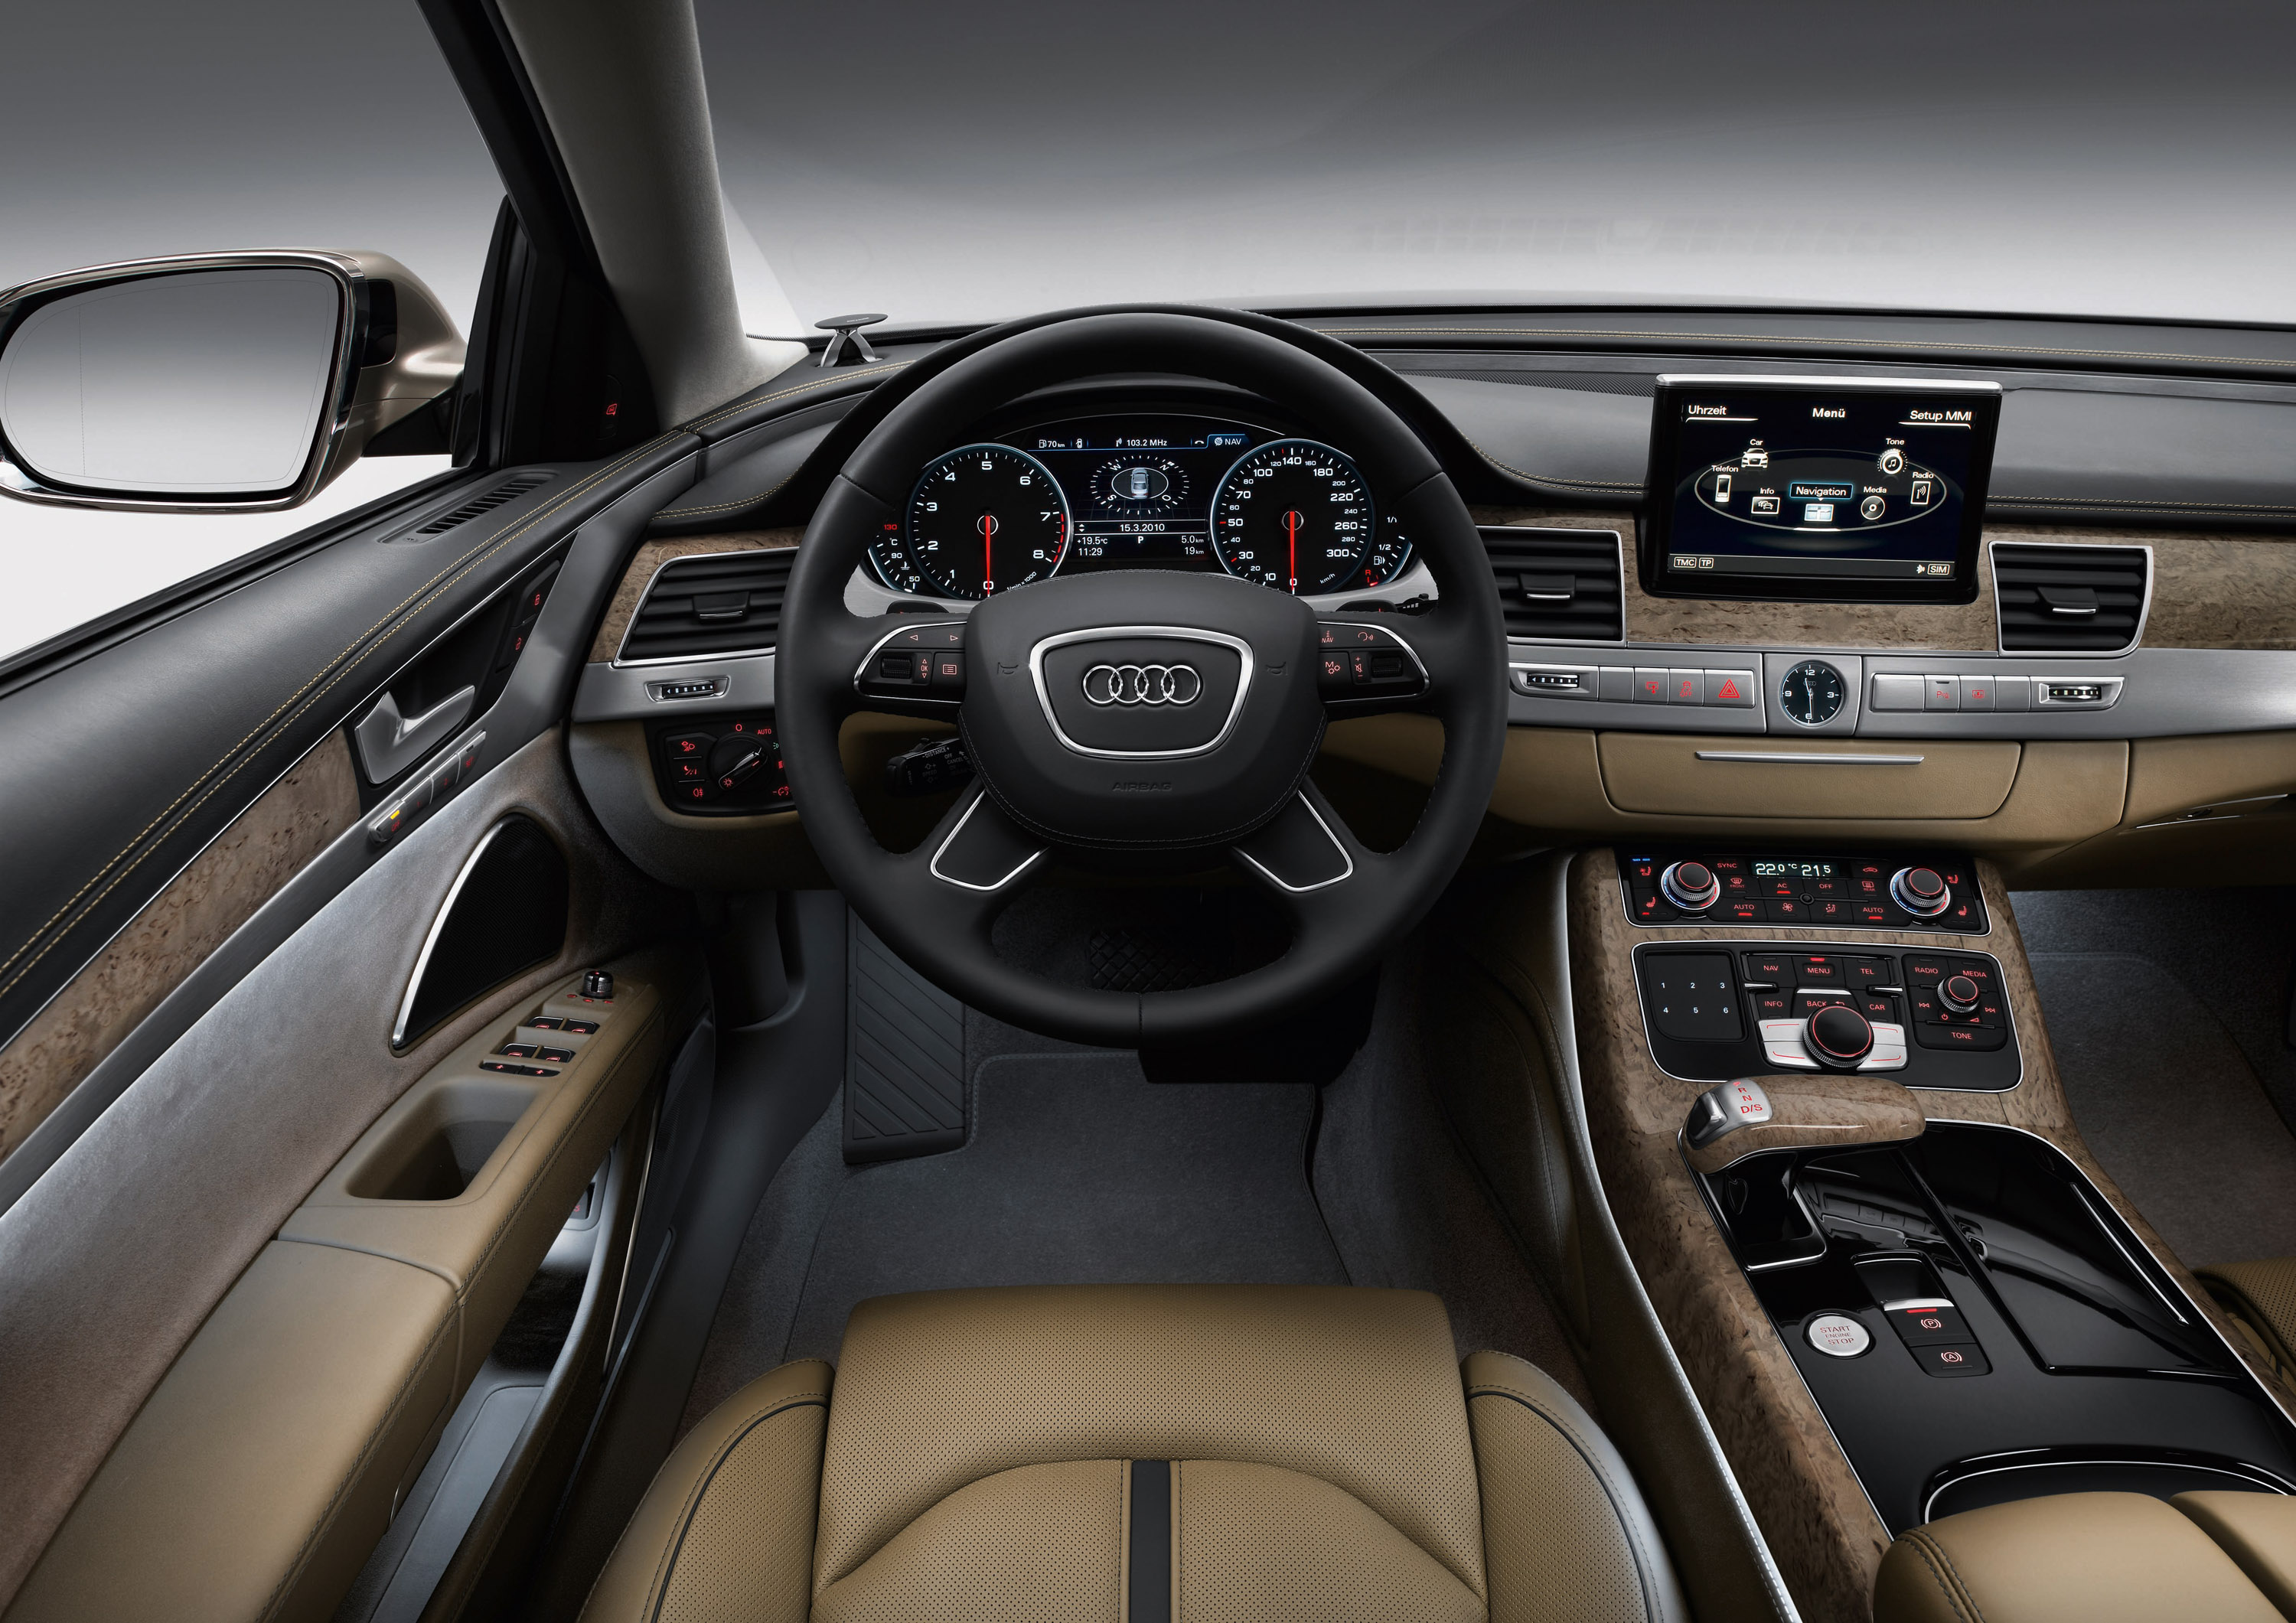 2011 Audi A8 L New Era Of Styling And Comfort